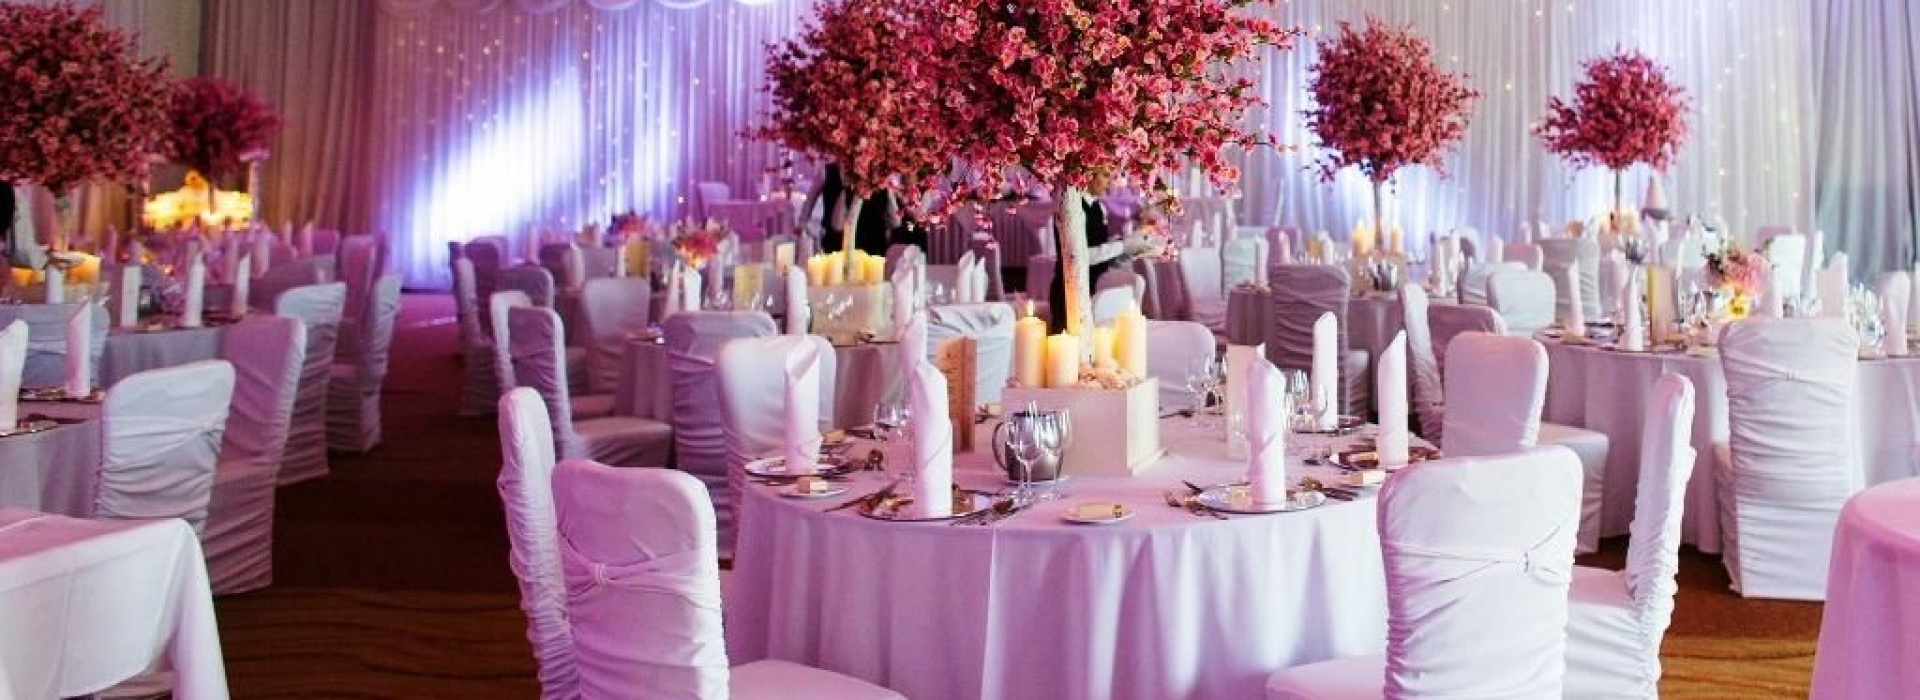 Finesse weddings wedding venue and ceremony decor and floral service junglespirit Choice Image